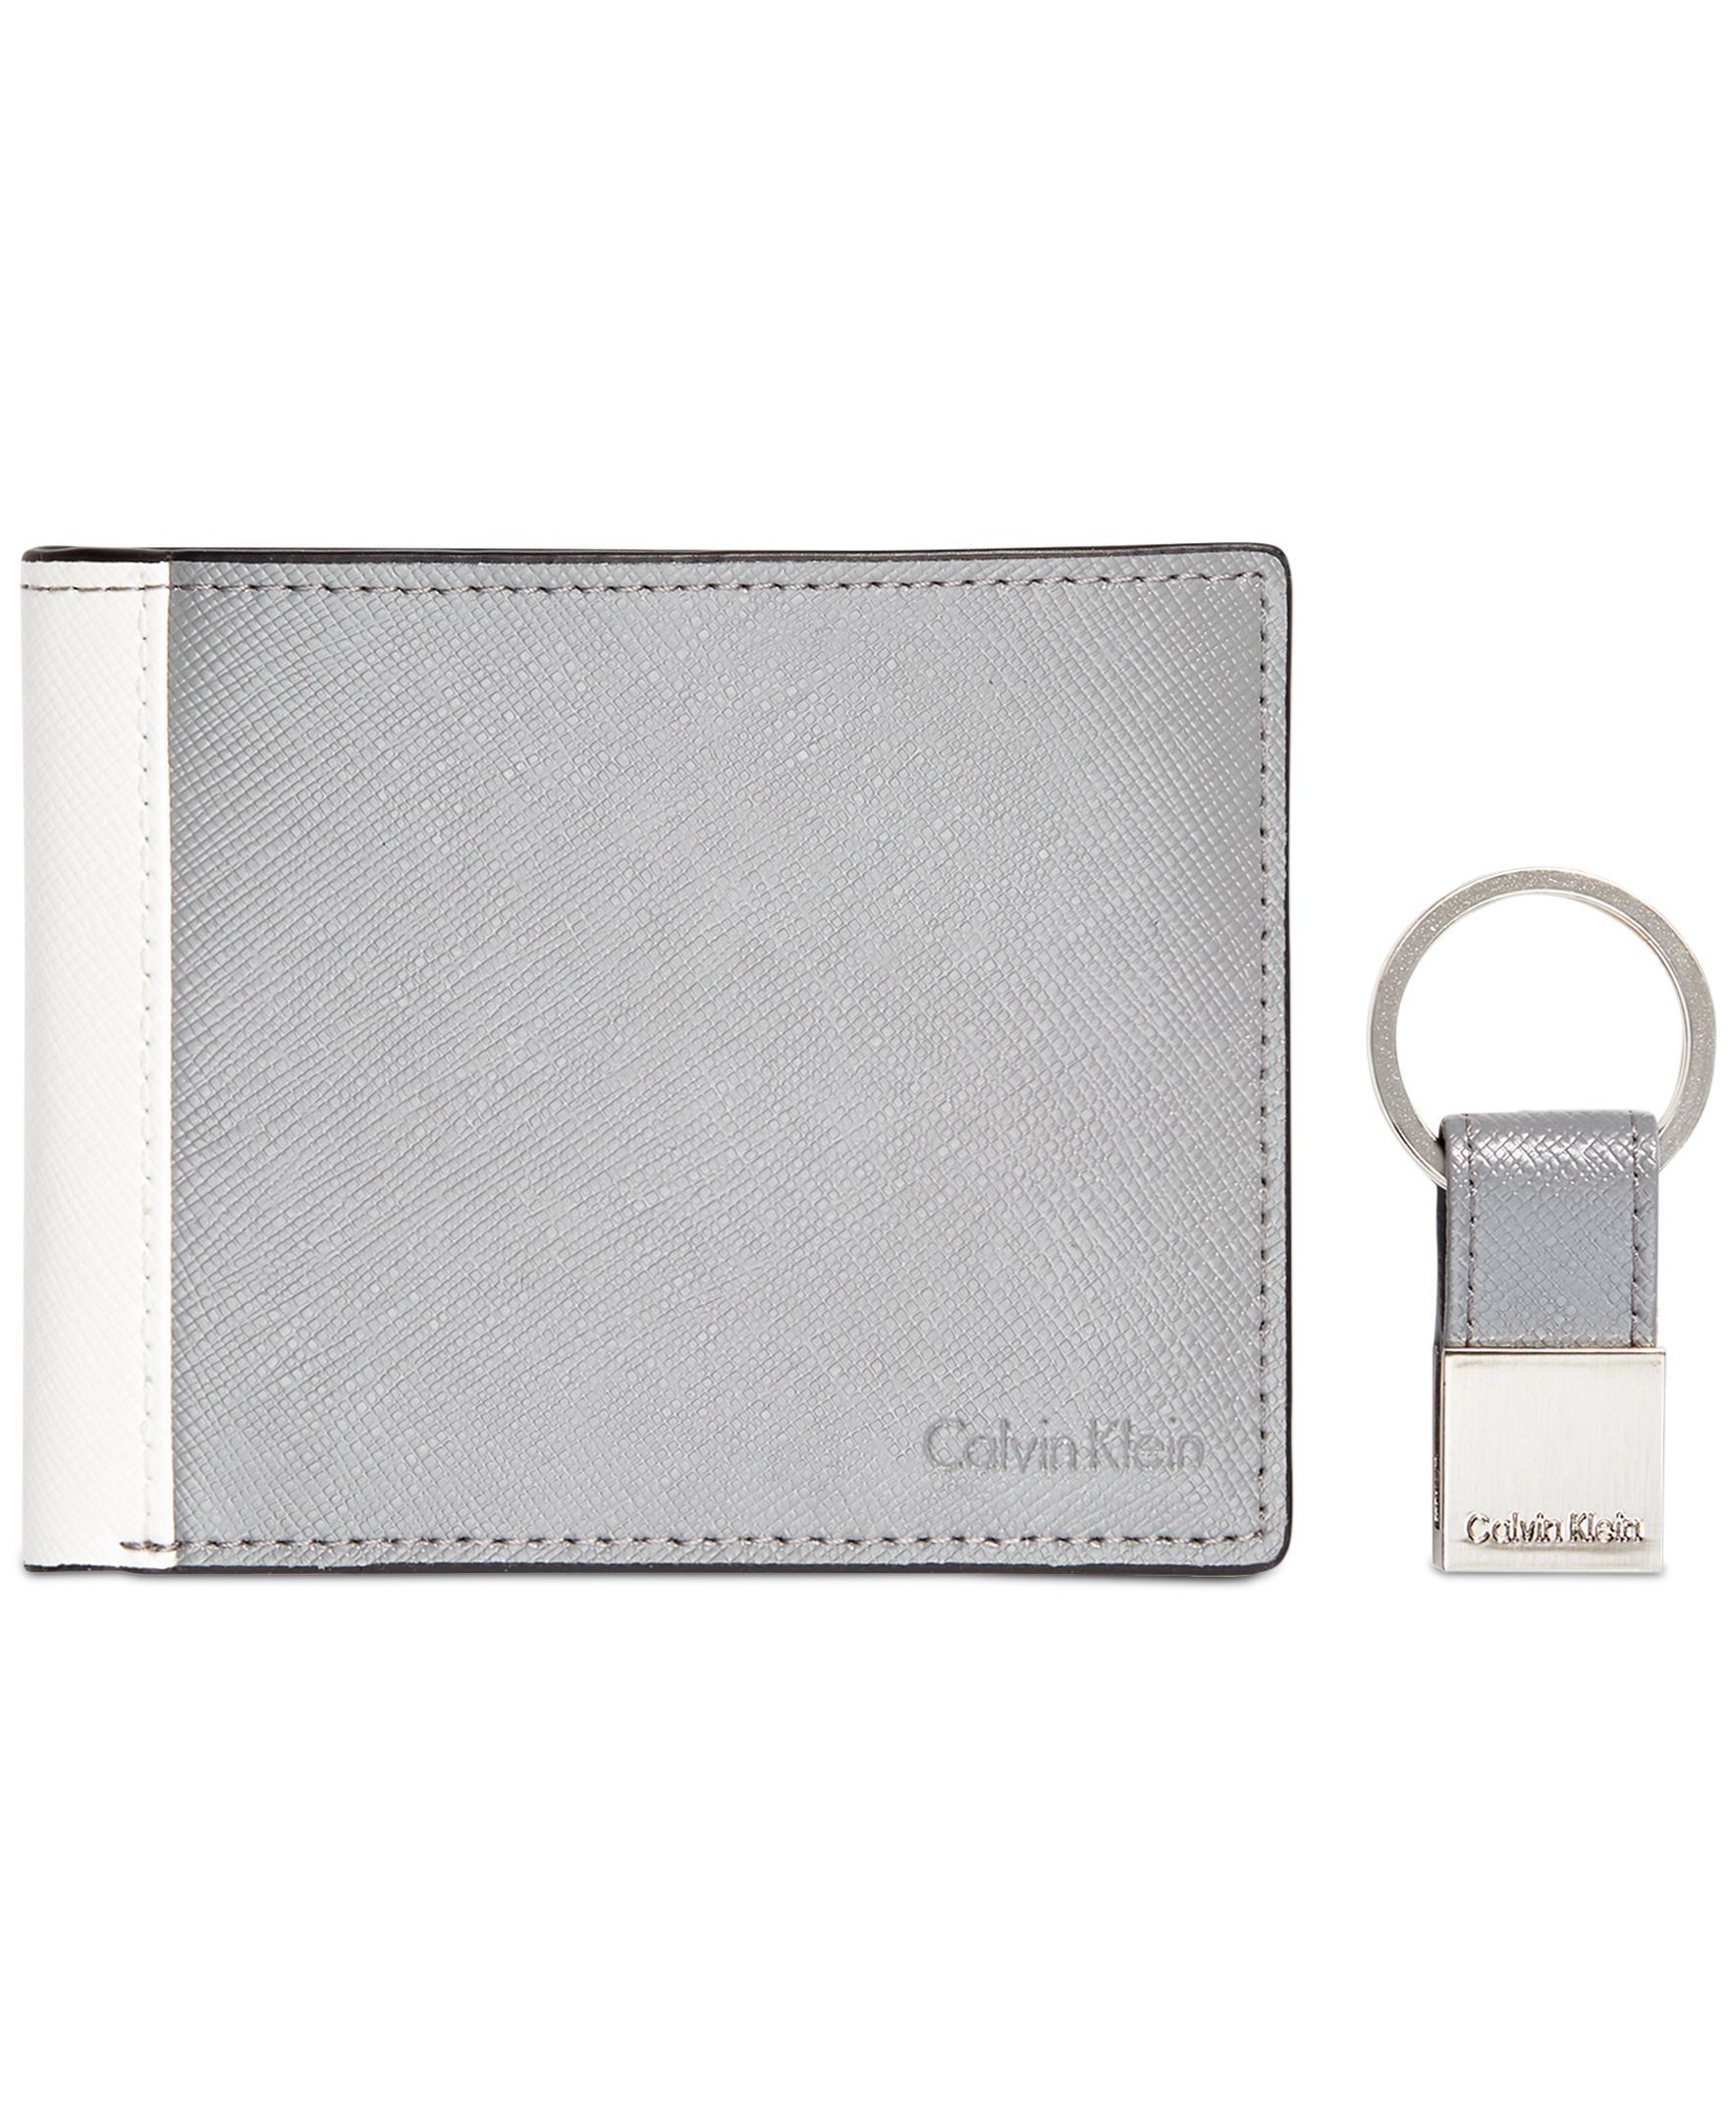 c56c64b25f37 Calvin Klein Saffiano Leather Two-Tone Bifold Wallet   Key Fob